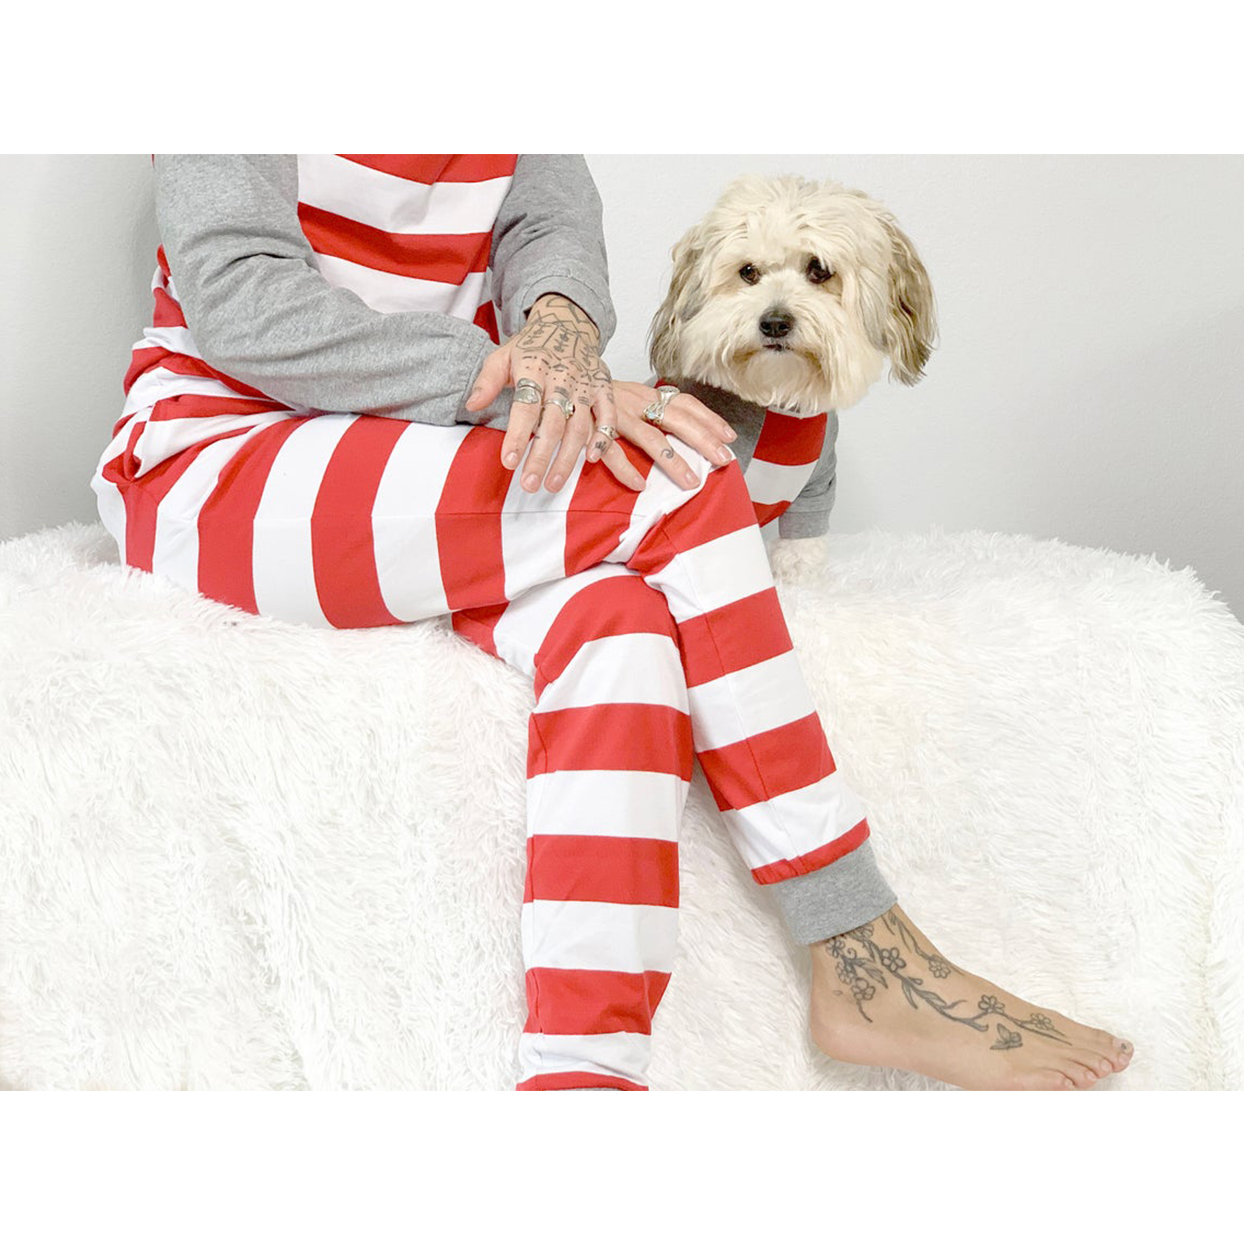 candy cane matching pet owner pajamas